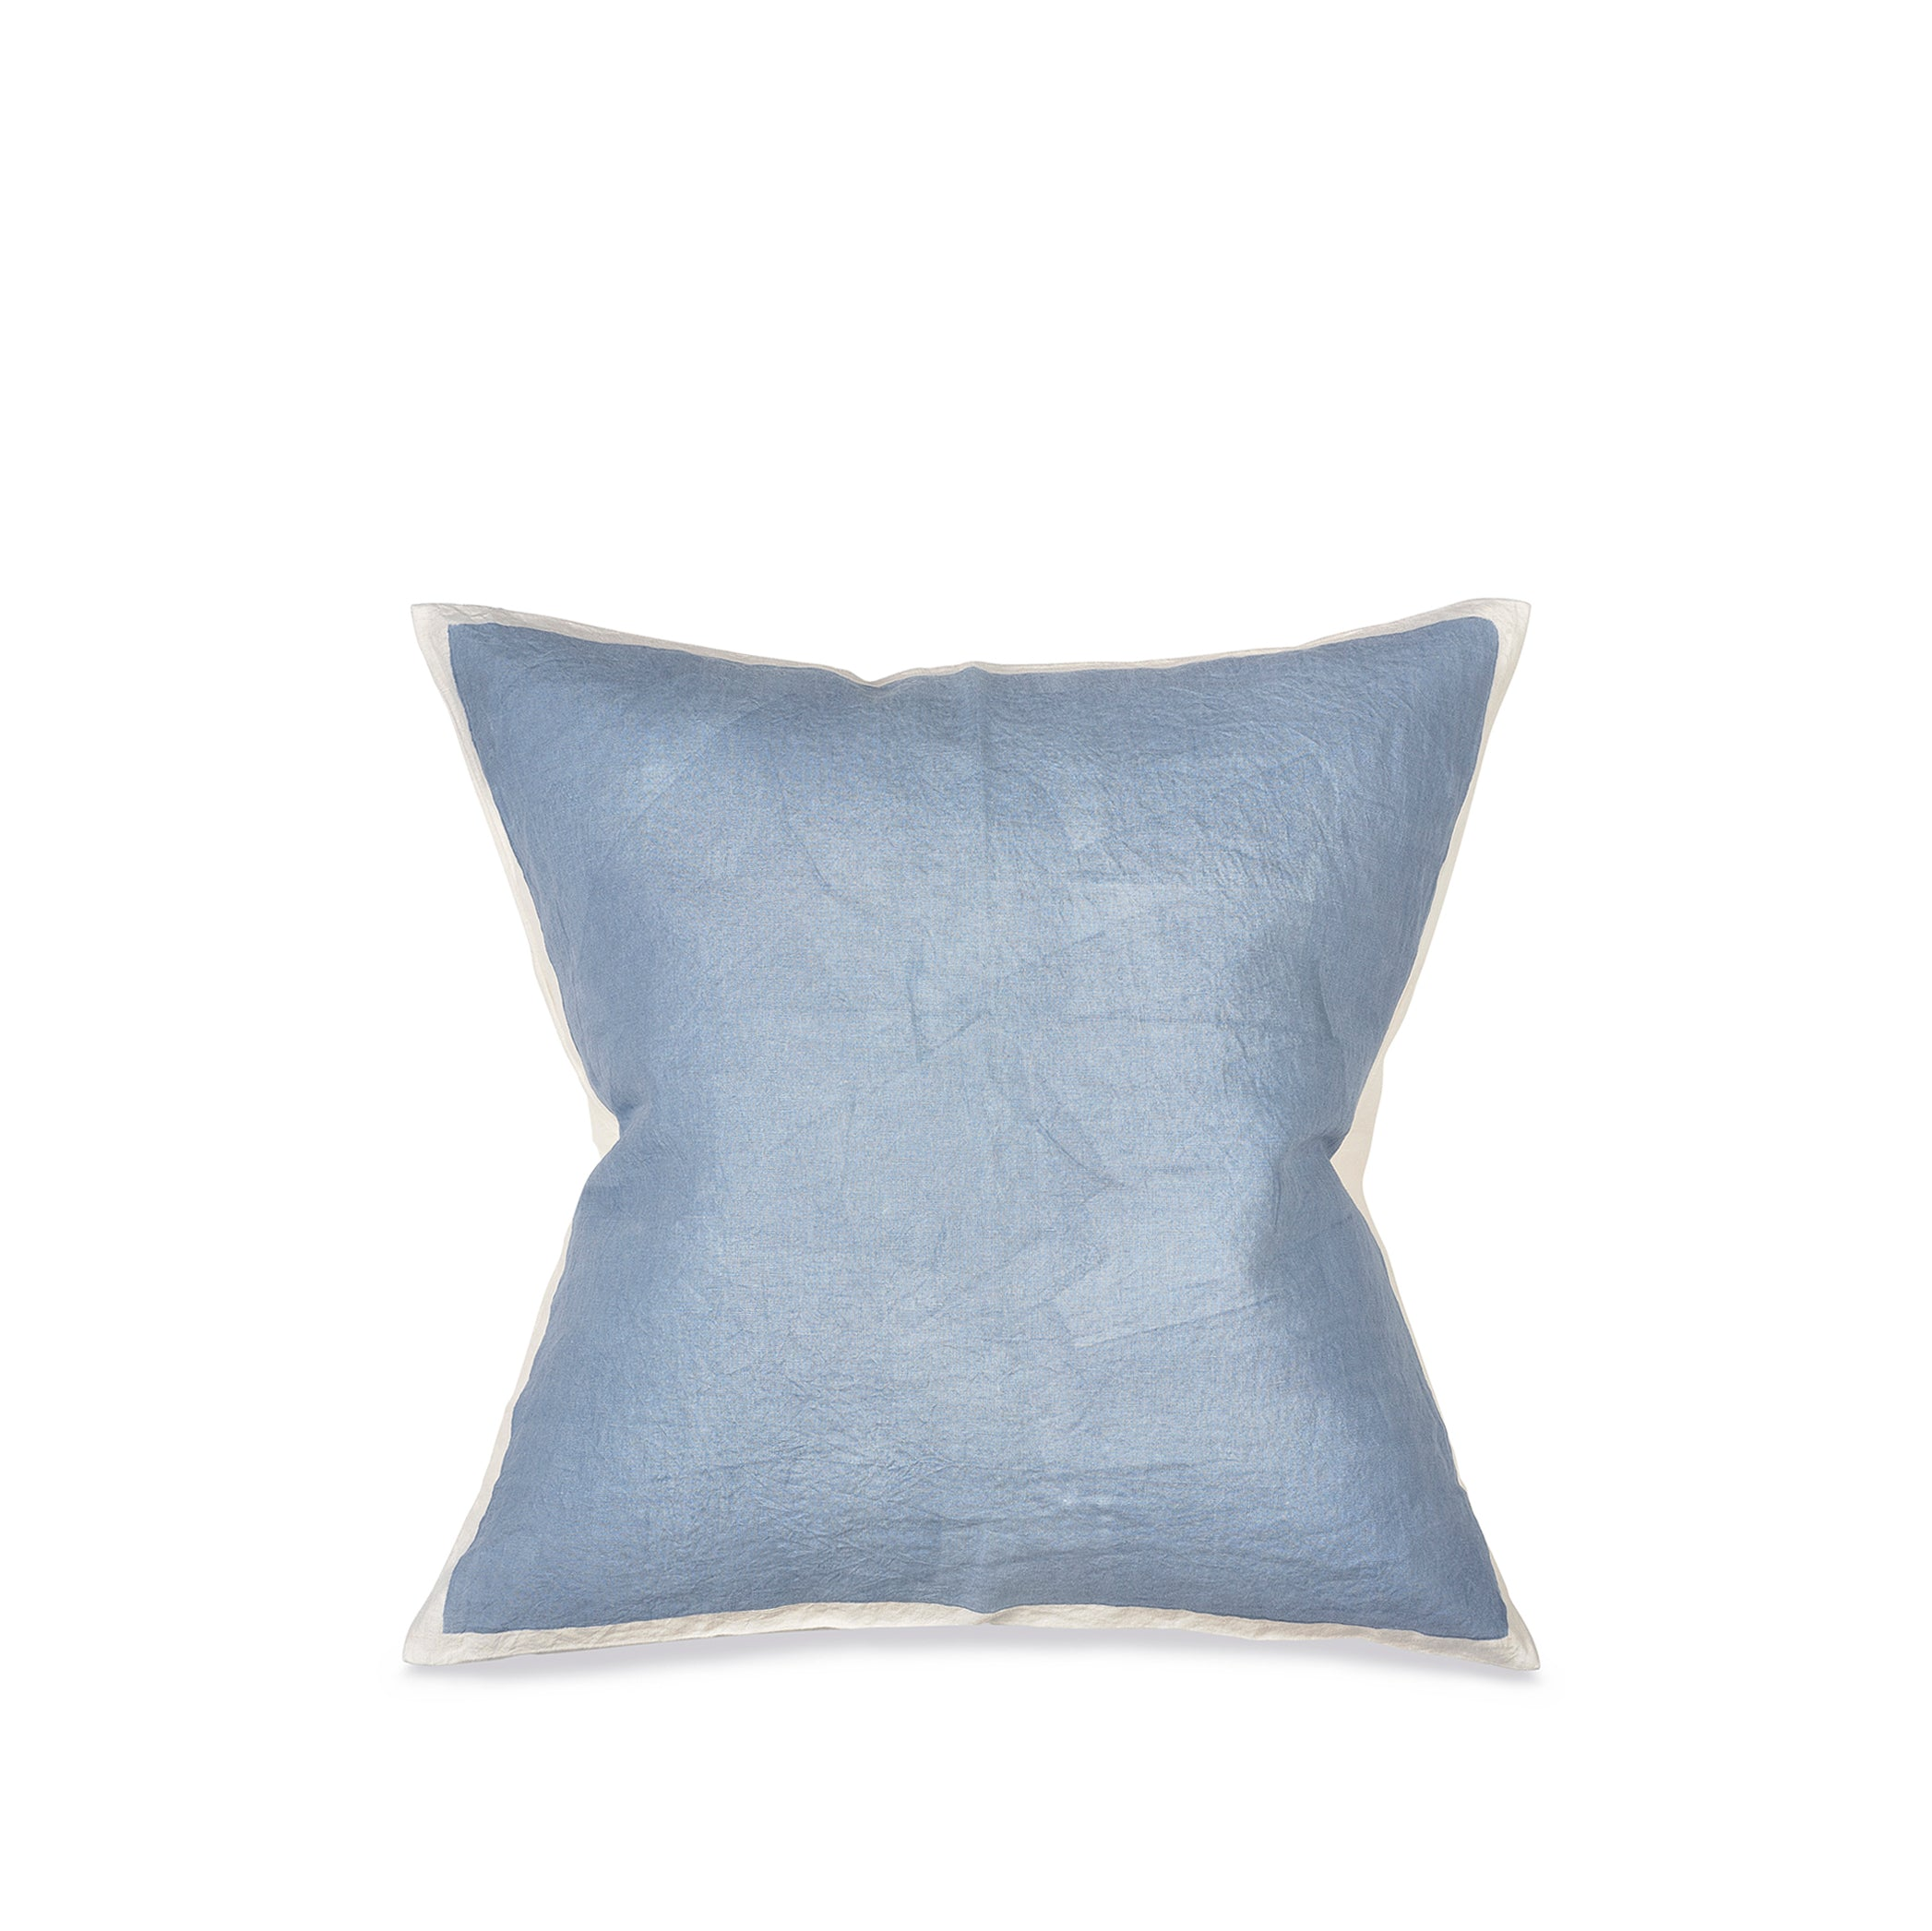 Hand Painted Linen Cushion Cover in Pale Blue, 60cm x 60cm